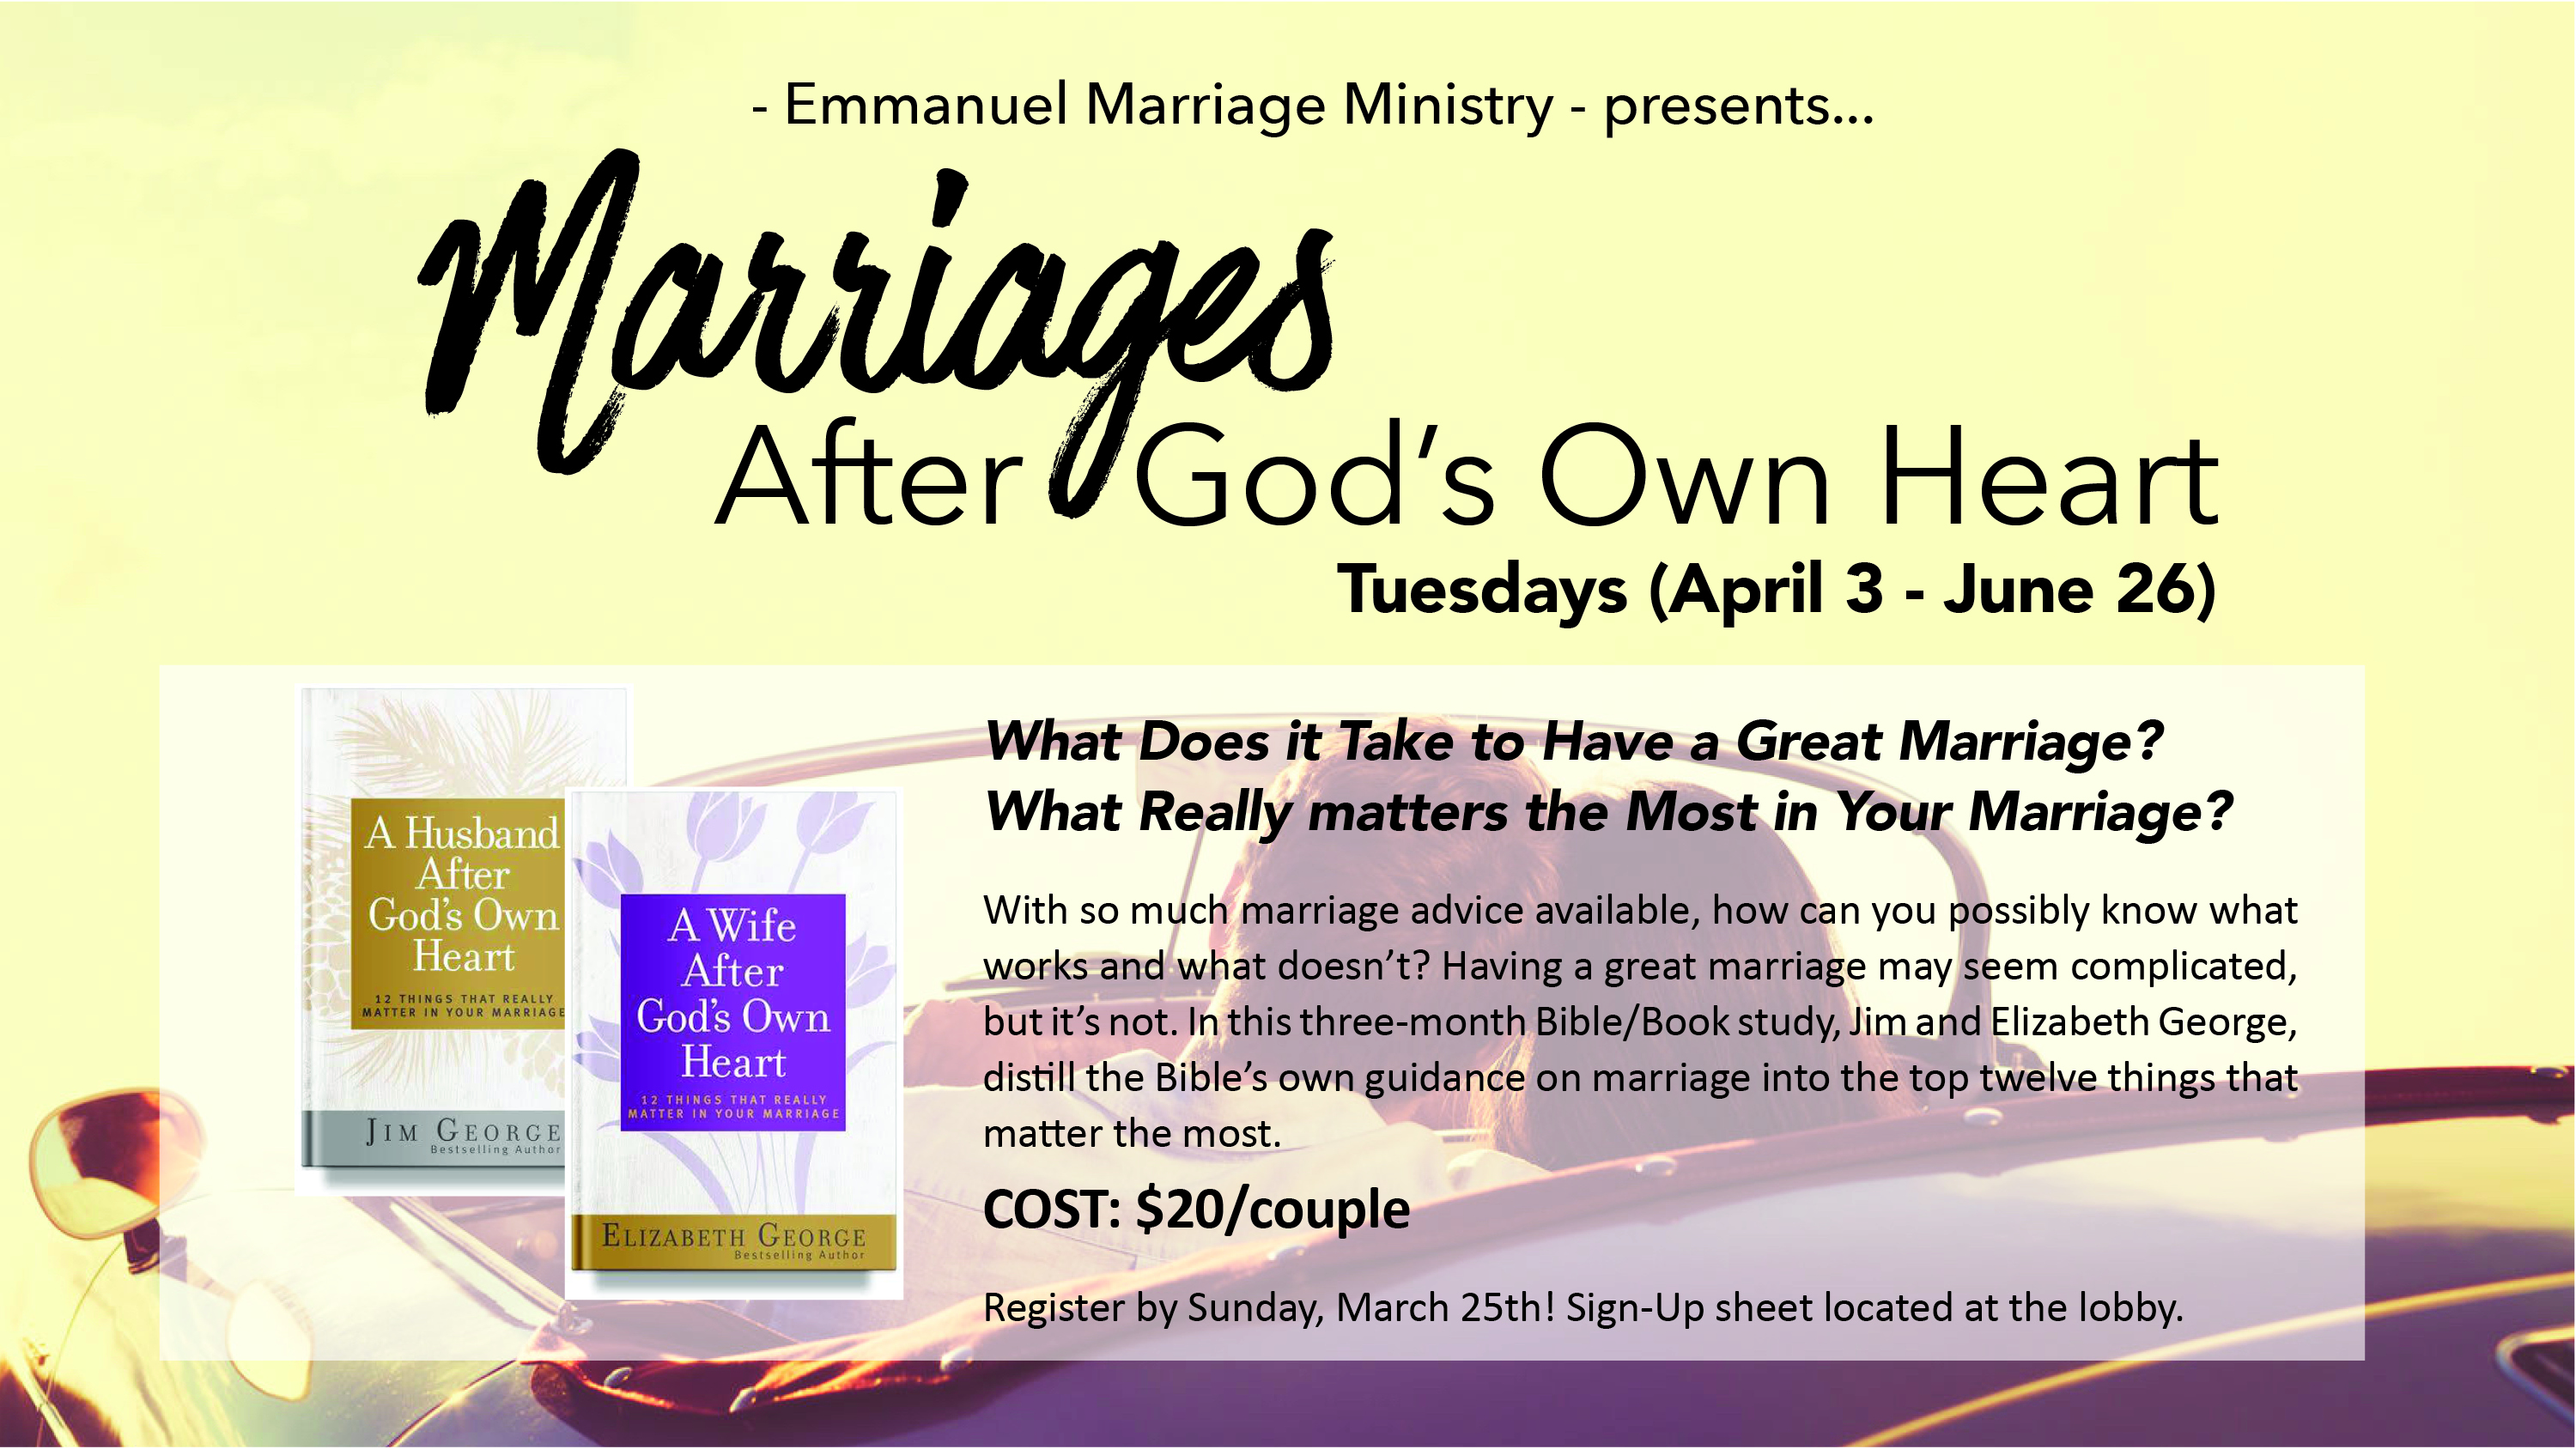 Marriages After God's Own Heart